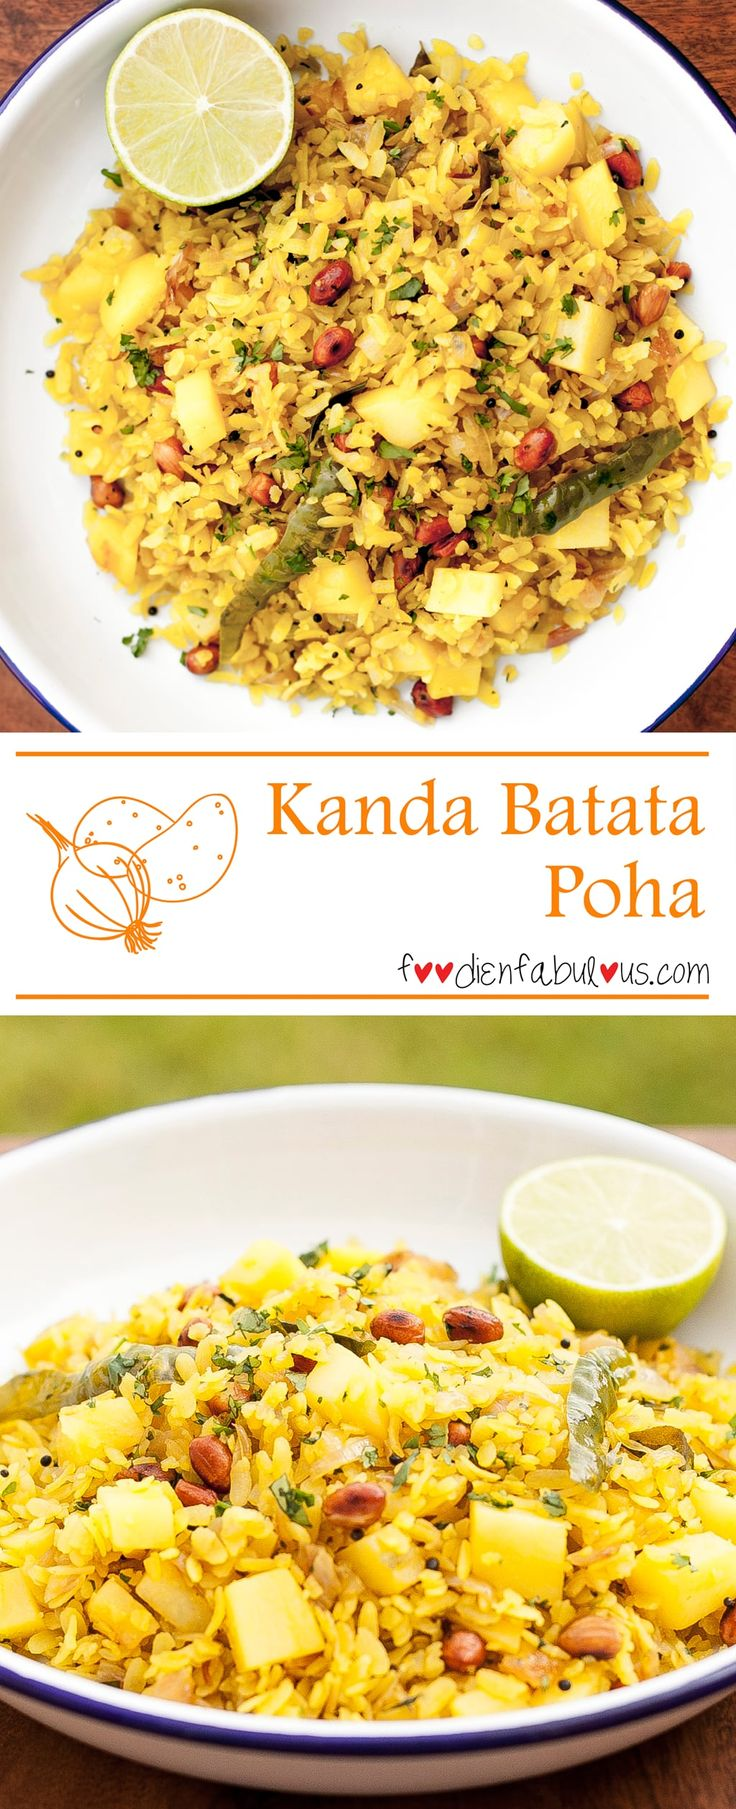 A very popular Maharashtrian breakfast - Kanda means onions in Marathi, Batata is potatoand poha is Rice flakes/flattened rice. Flattened rice (also called beaten rice) is a dehusked rice which is flattened into flat light dry flakes.